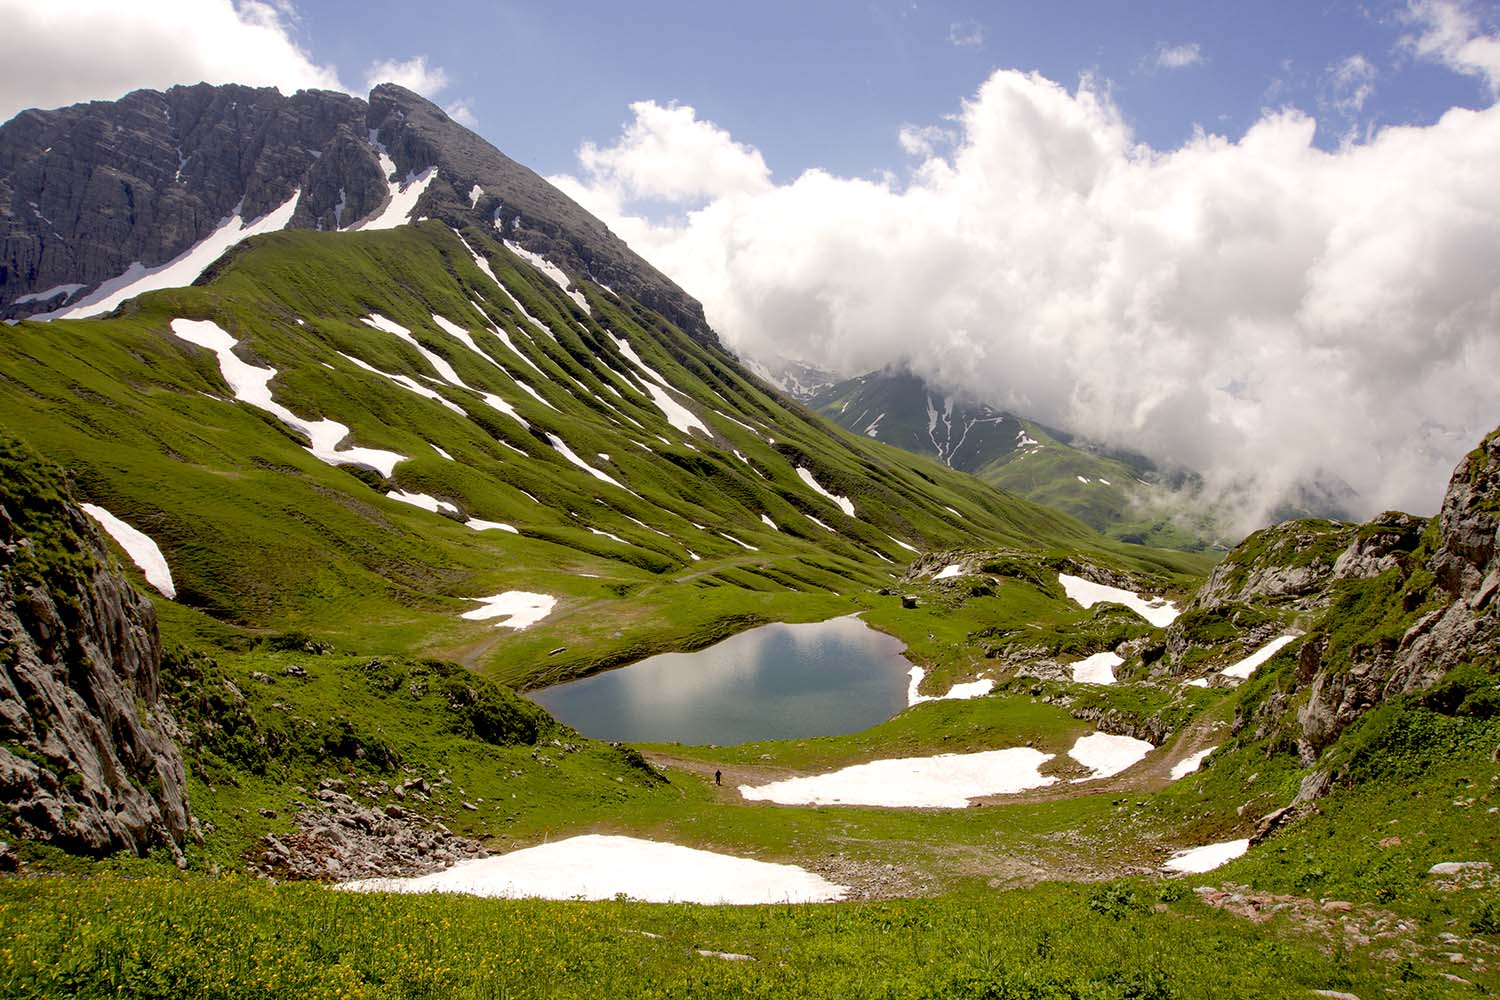 Hike the Green Ring in Lech